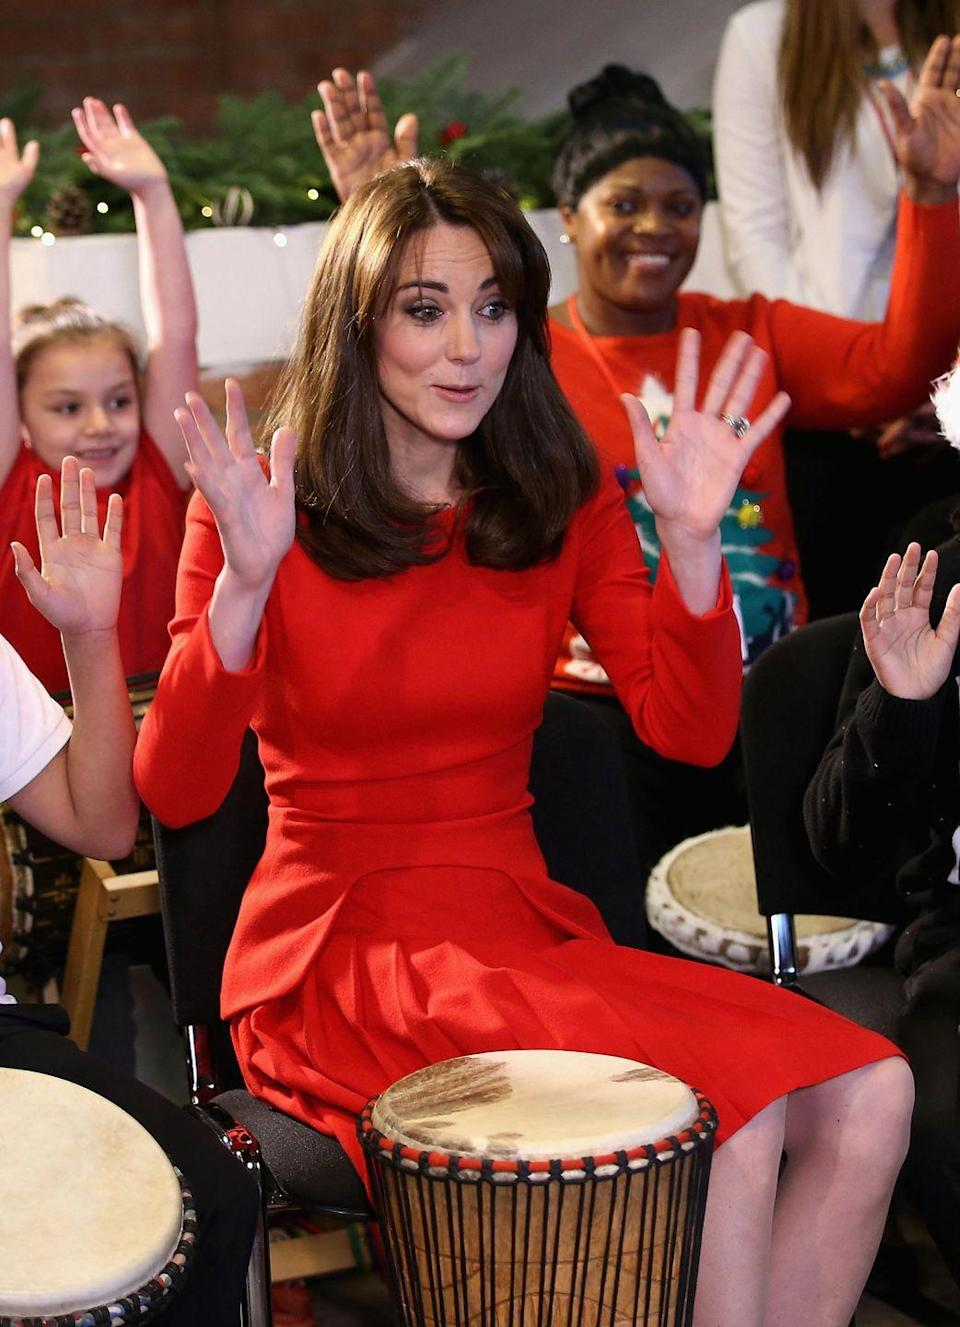 <p>For this dress's threepeat, Kate sported her infamous fringe. The bright red suited the occasion: a Christmas party at the Anna Freud Centre Family School. And she did a hand dance with the kids!</p>